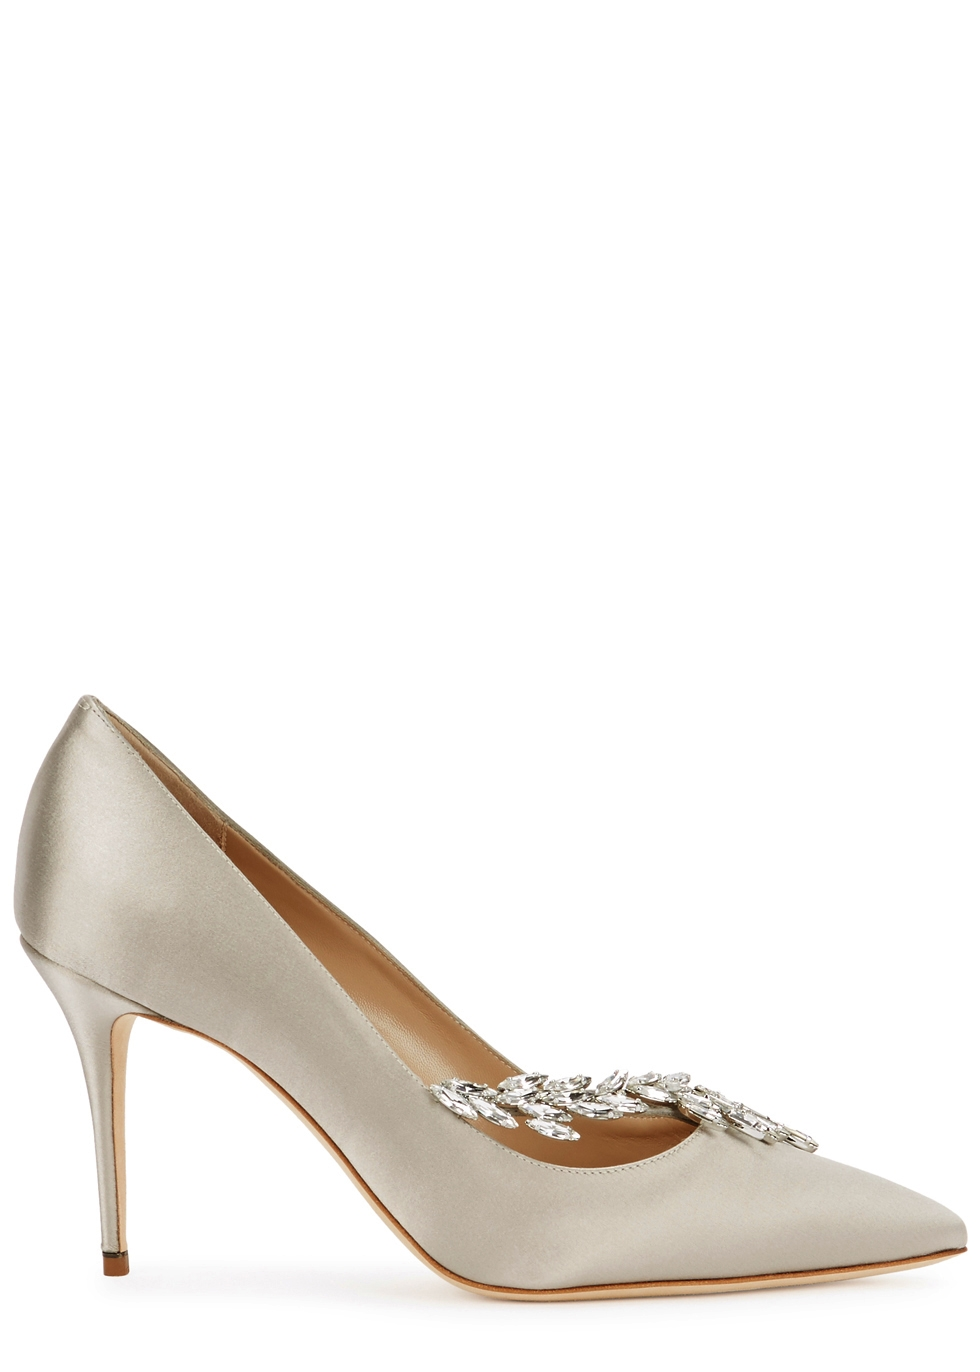 20fb279a2957 shopping manolo blahnik. nadira champagne satin pumps 5f481 bce6c